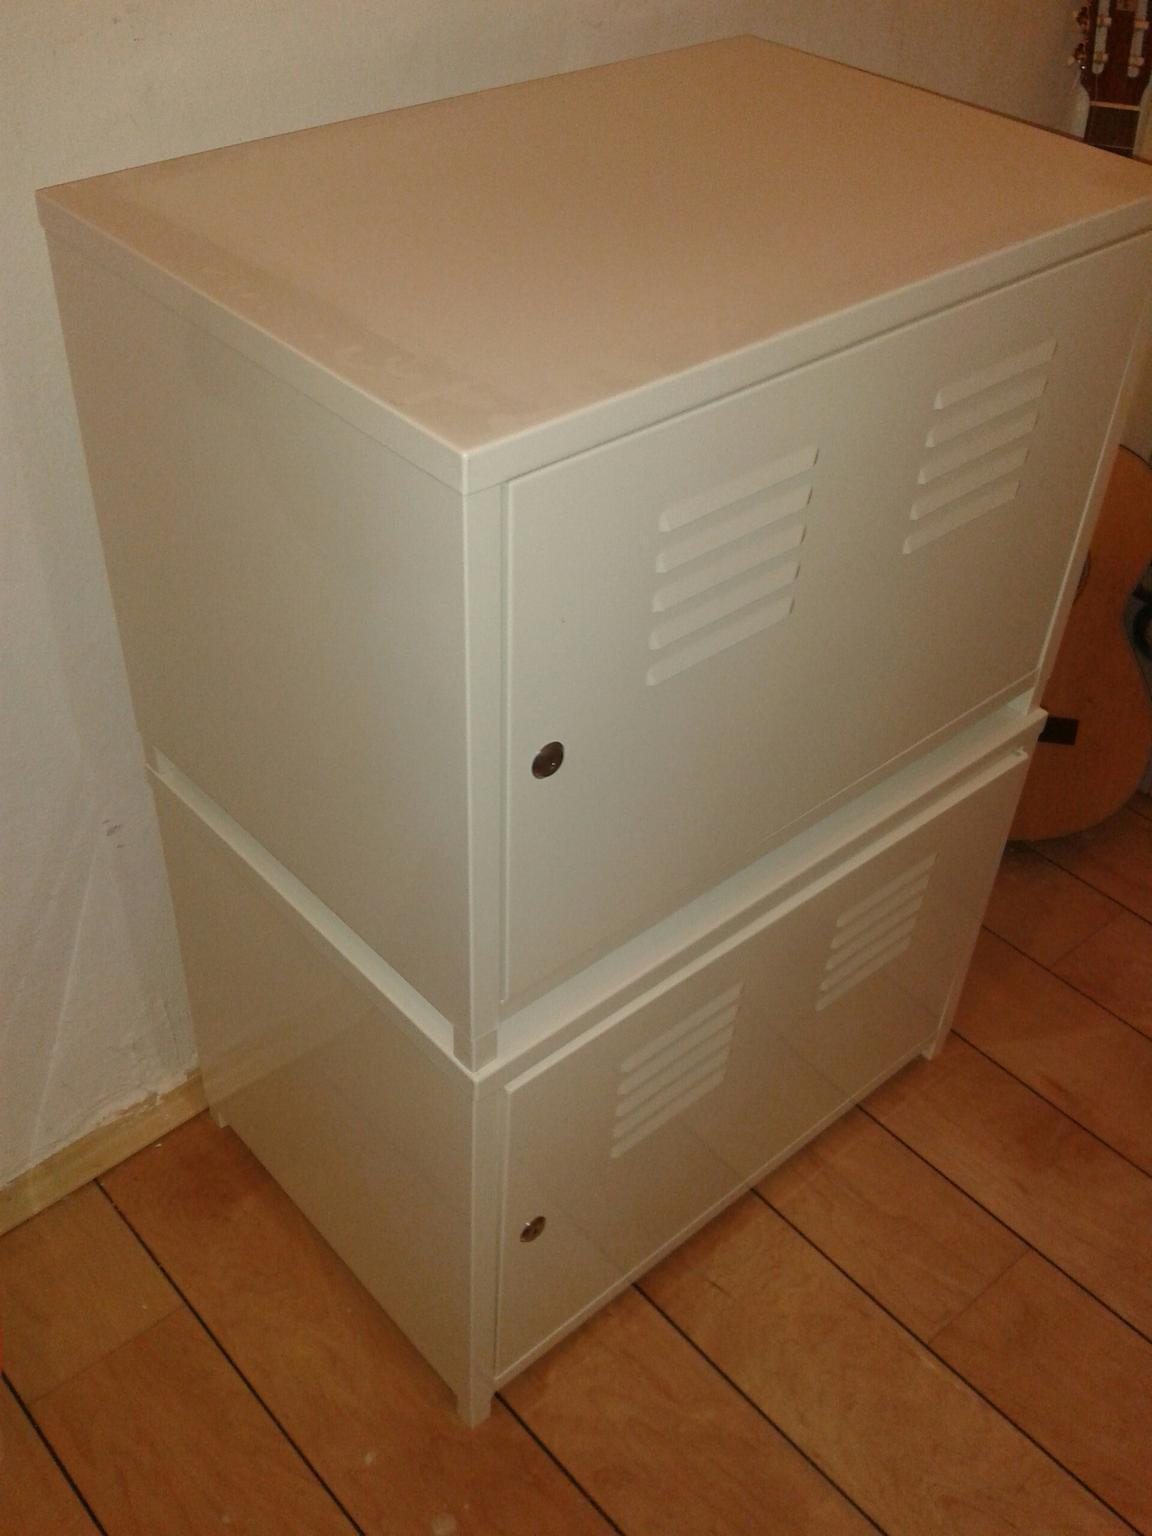 Absperrbarer Ikea Ps Schrank In 8020 Graz For 25 00 For Sale Shpock